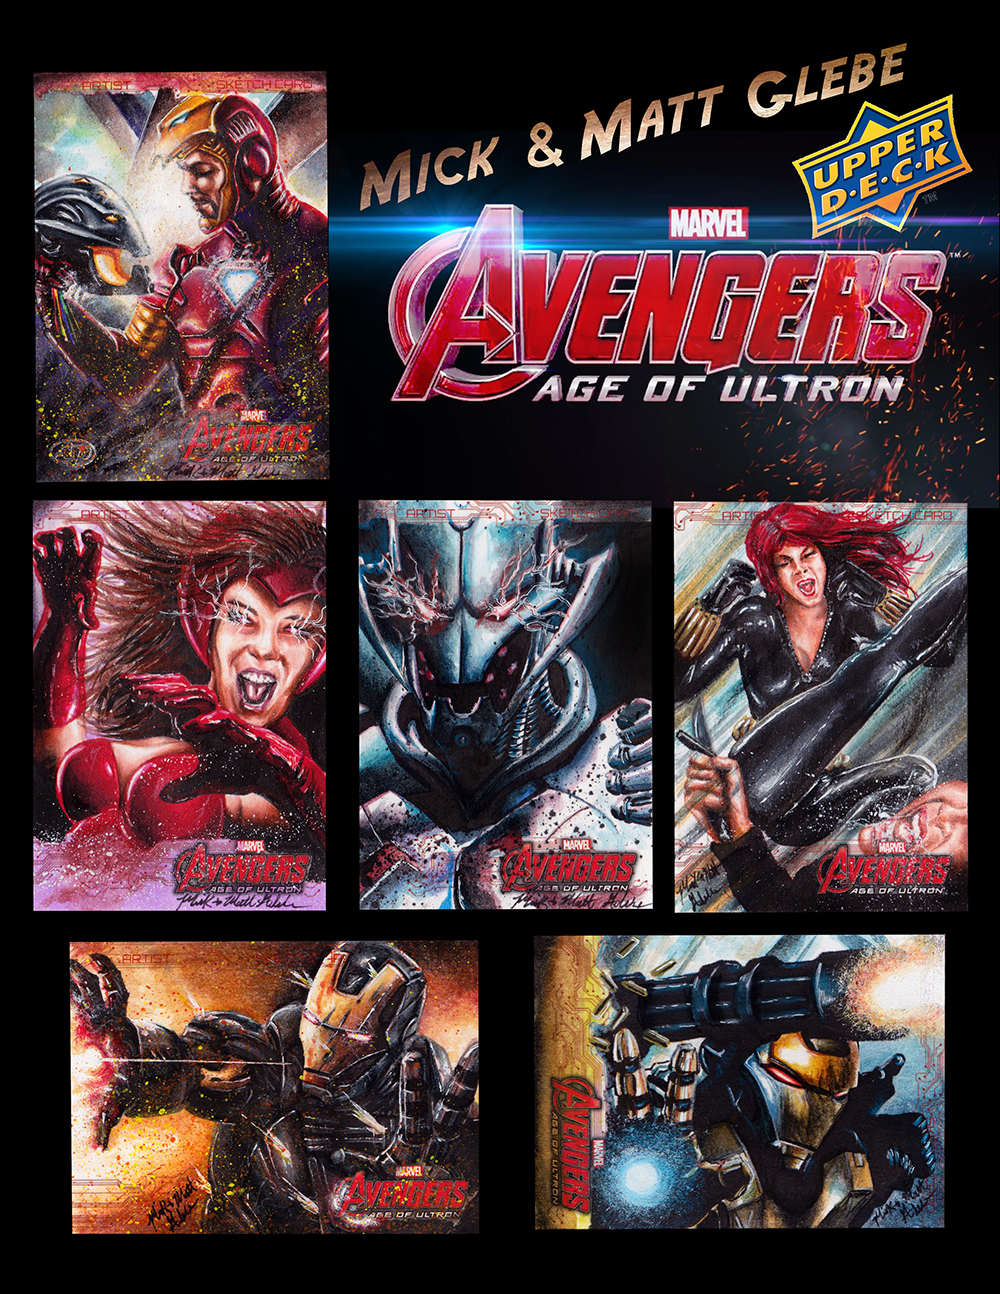 Avengers Age Of Ultron By Iloegbunam On Deviantart: The Avengers Age Of Ultron By Twynsunz On DeviantArt